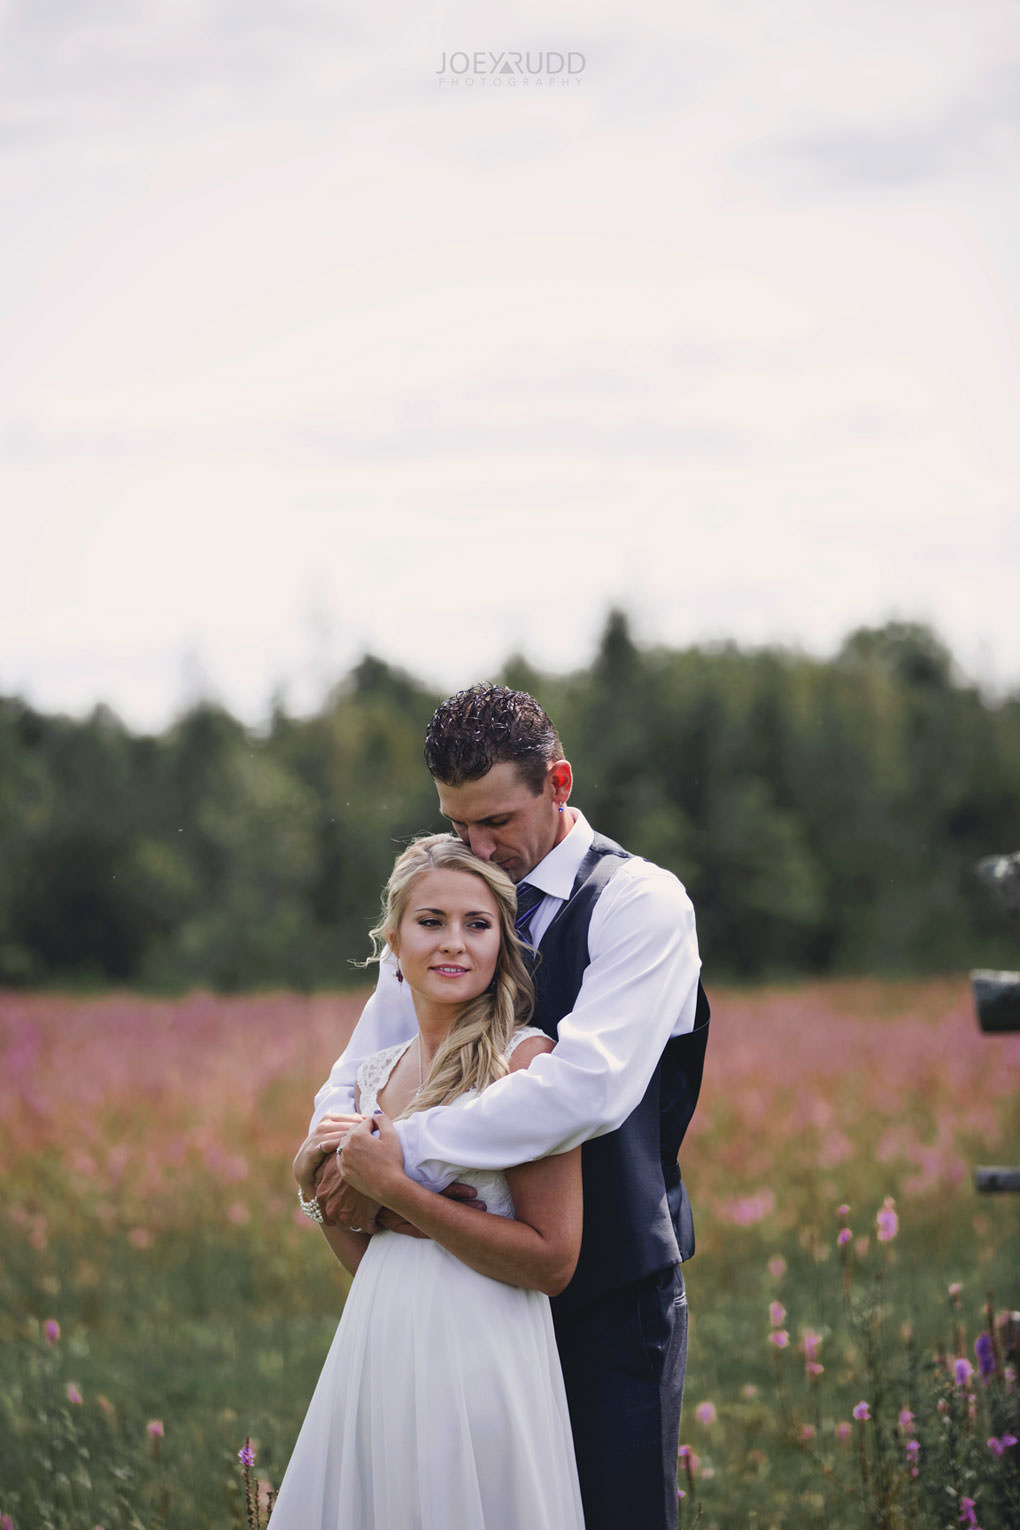 Ottawa Wedding Photography by Ottawa Wedding Photographer Joey Rudd Photography Elopement Carleton Place Smiths Falls Ontario Rustic Cute Natural